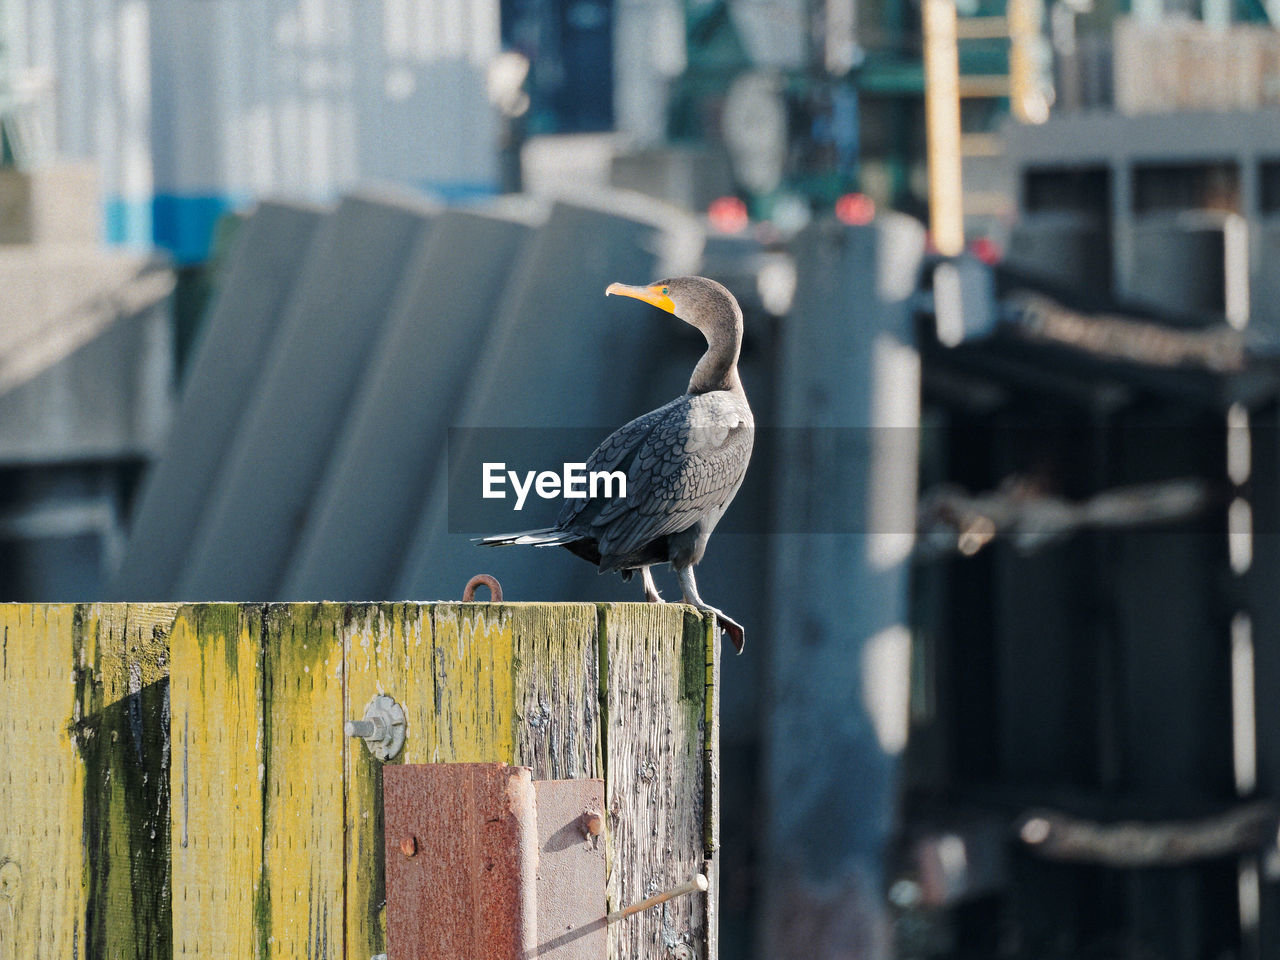 animal themes, animal wildlife, animals in the wild, animal, vertebrate, bird, perching, one animal, focus on foreground, day, wood - material, architecture, no people, outdoors, built structure, close-up, full length, fence, boundary, nature, seagull, wooden post